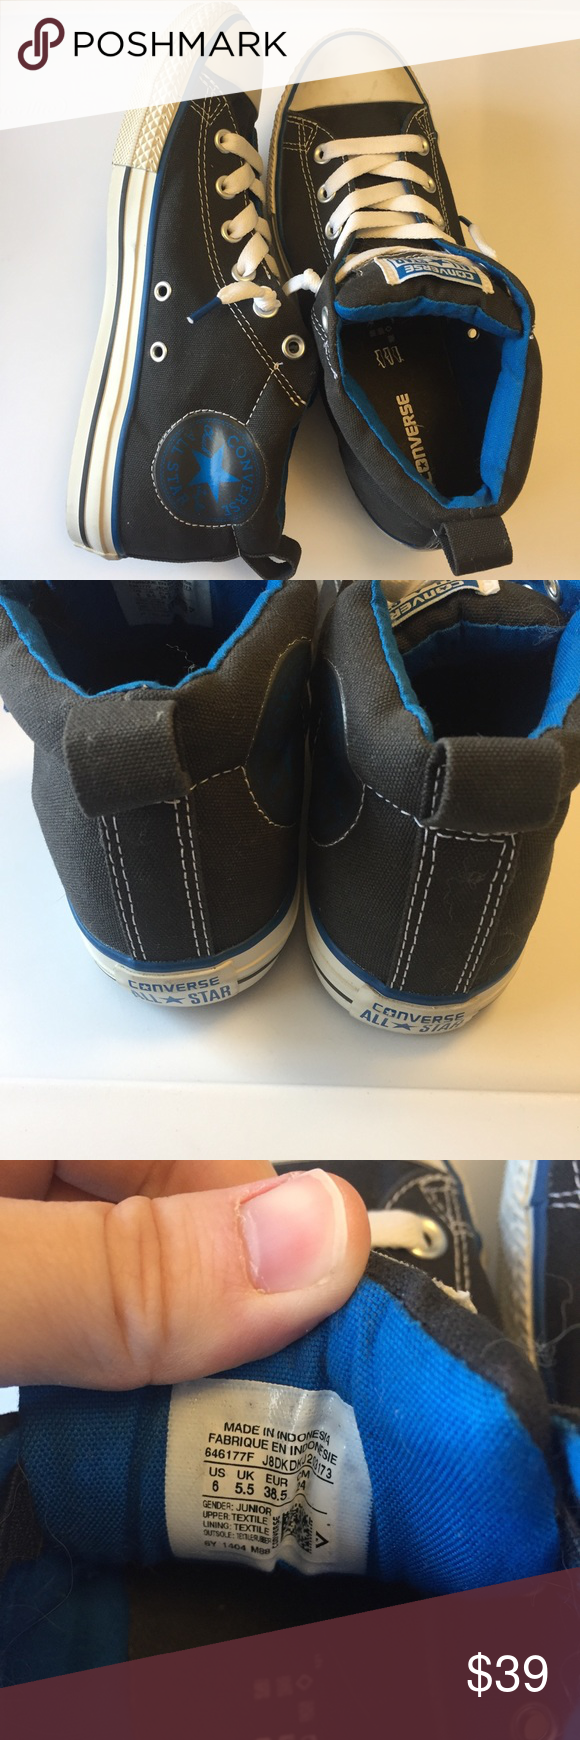 Converse   Canvas High Tops Youth Converse shoes. Slip on high top style. Padded along the top portion for support. Perfect condition besides small scuffs seen in last photo. Black with blue accents. Converse Shoes Sneakers